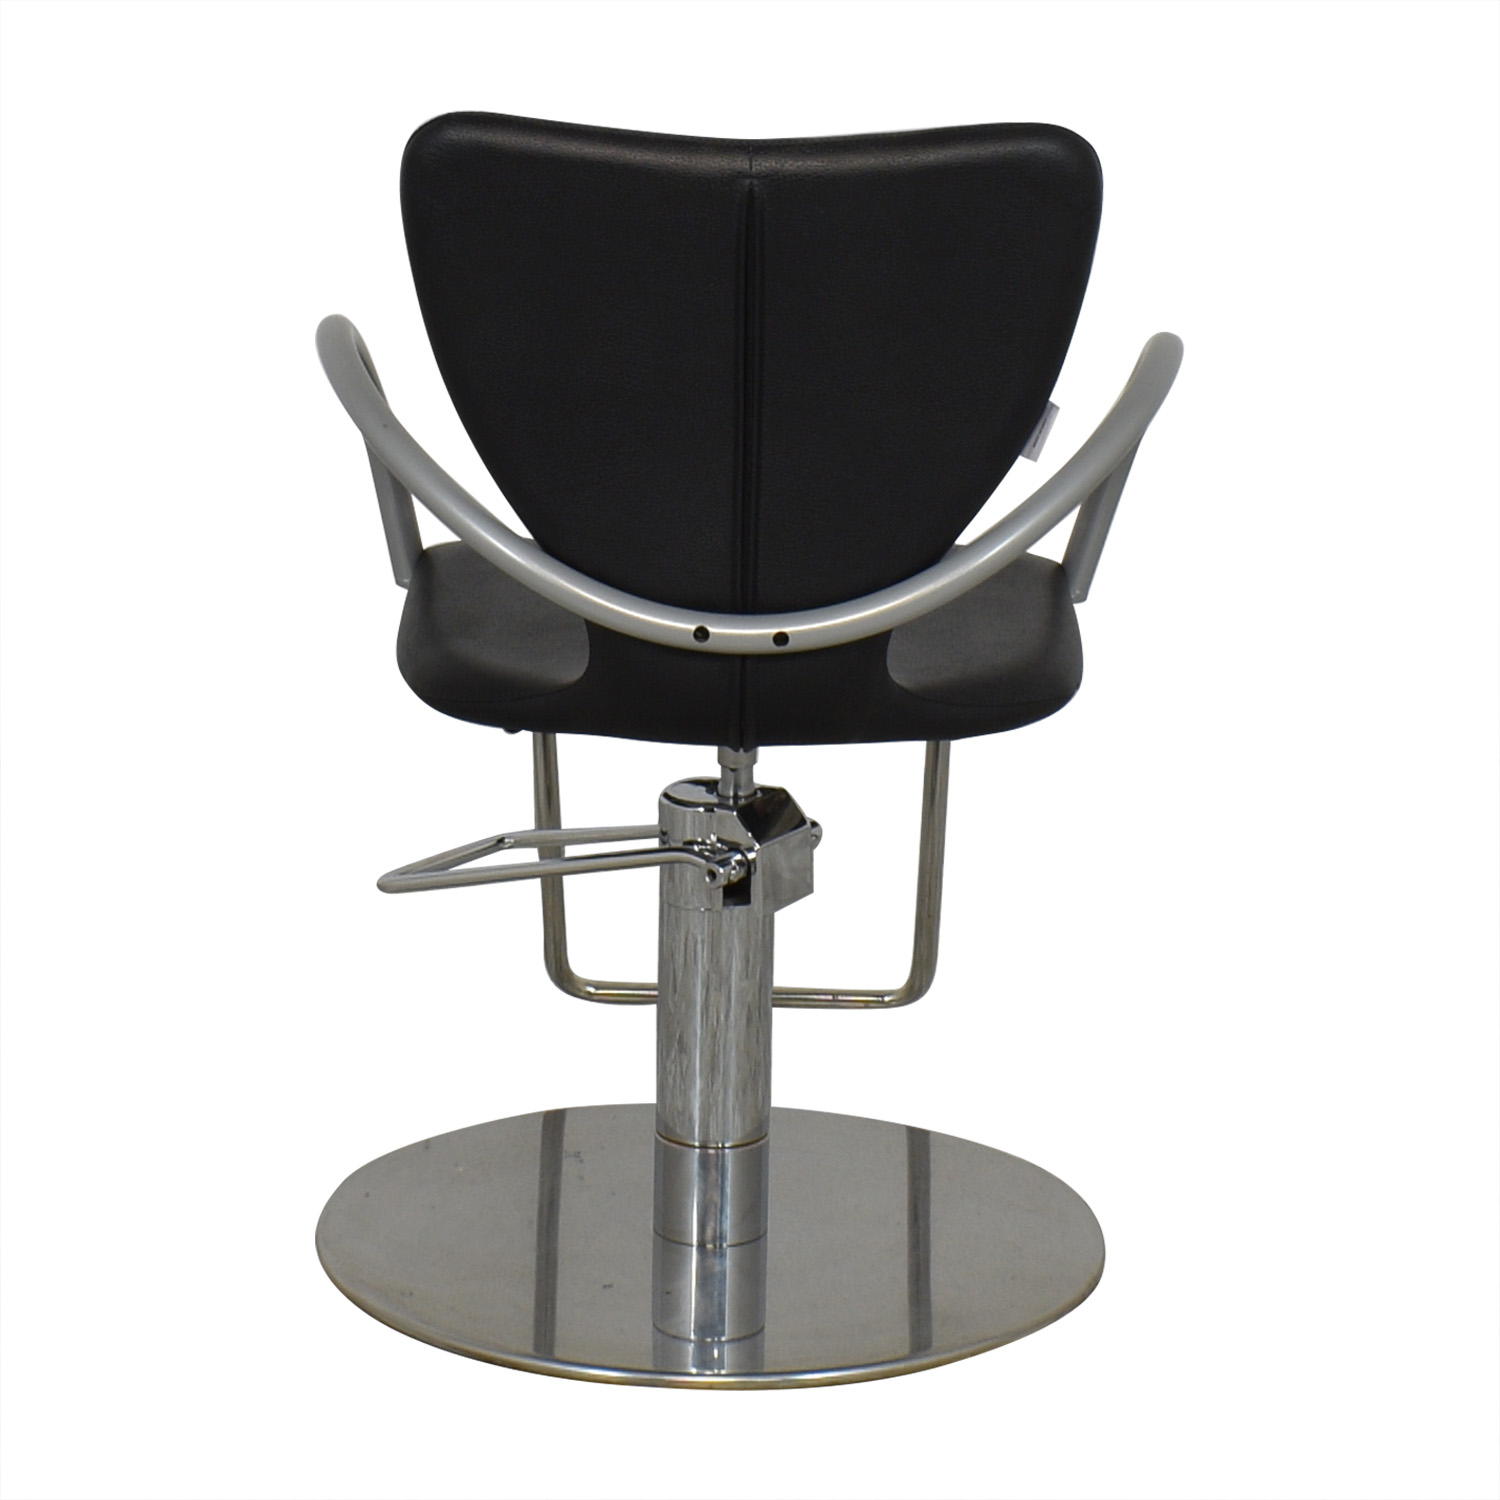 Gamma & Bross Gamma Bross Folda Parrot Styling Chair ct